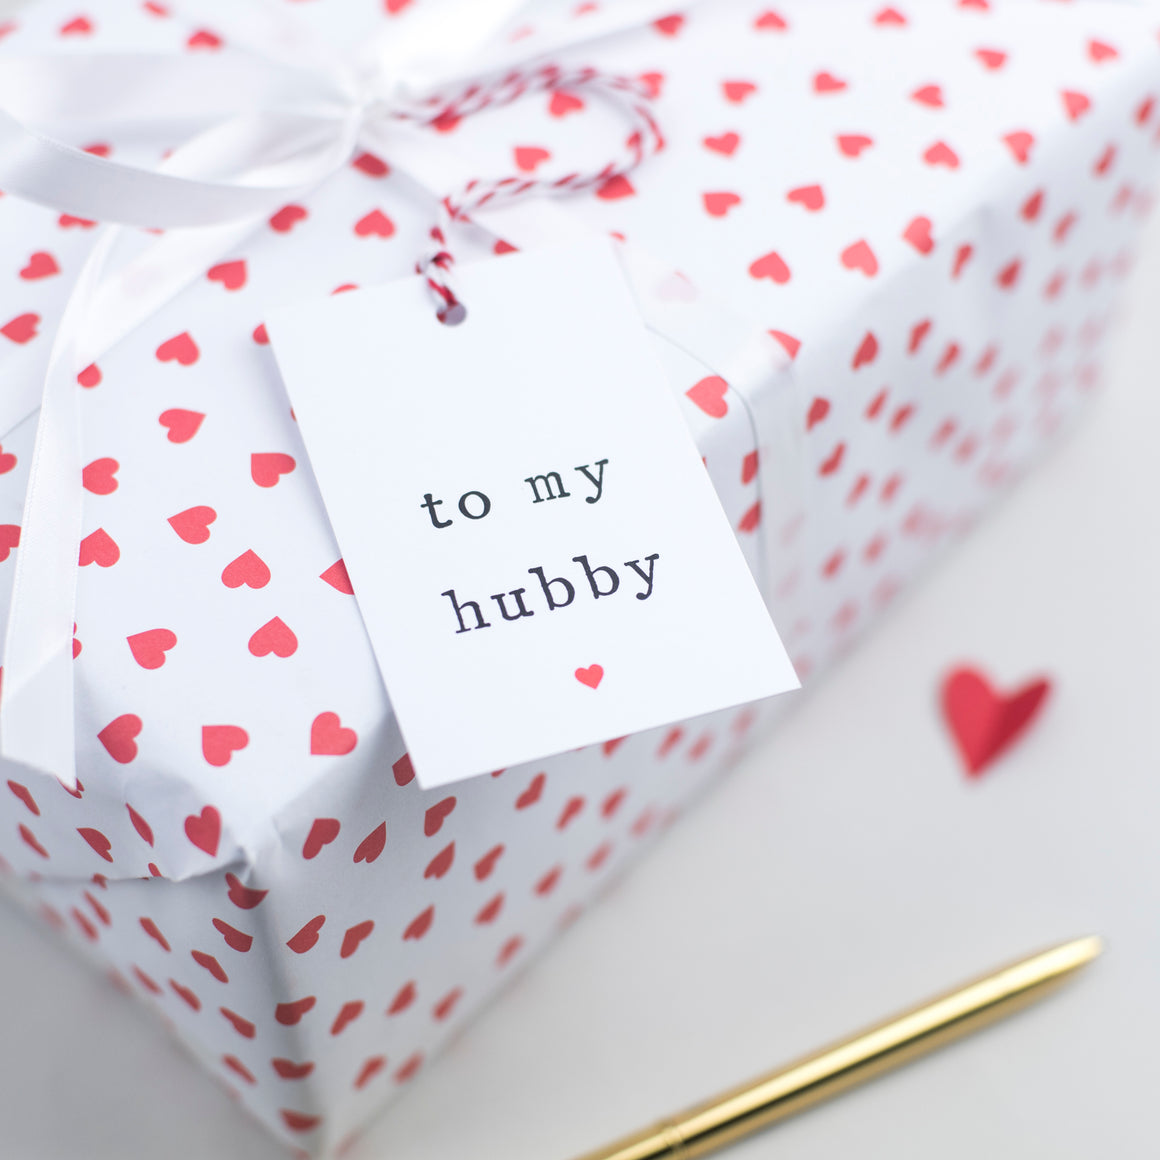 'To my wifey or hubby' Gift Tag